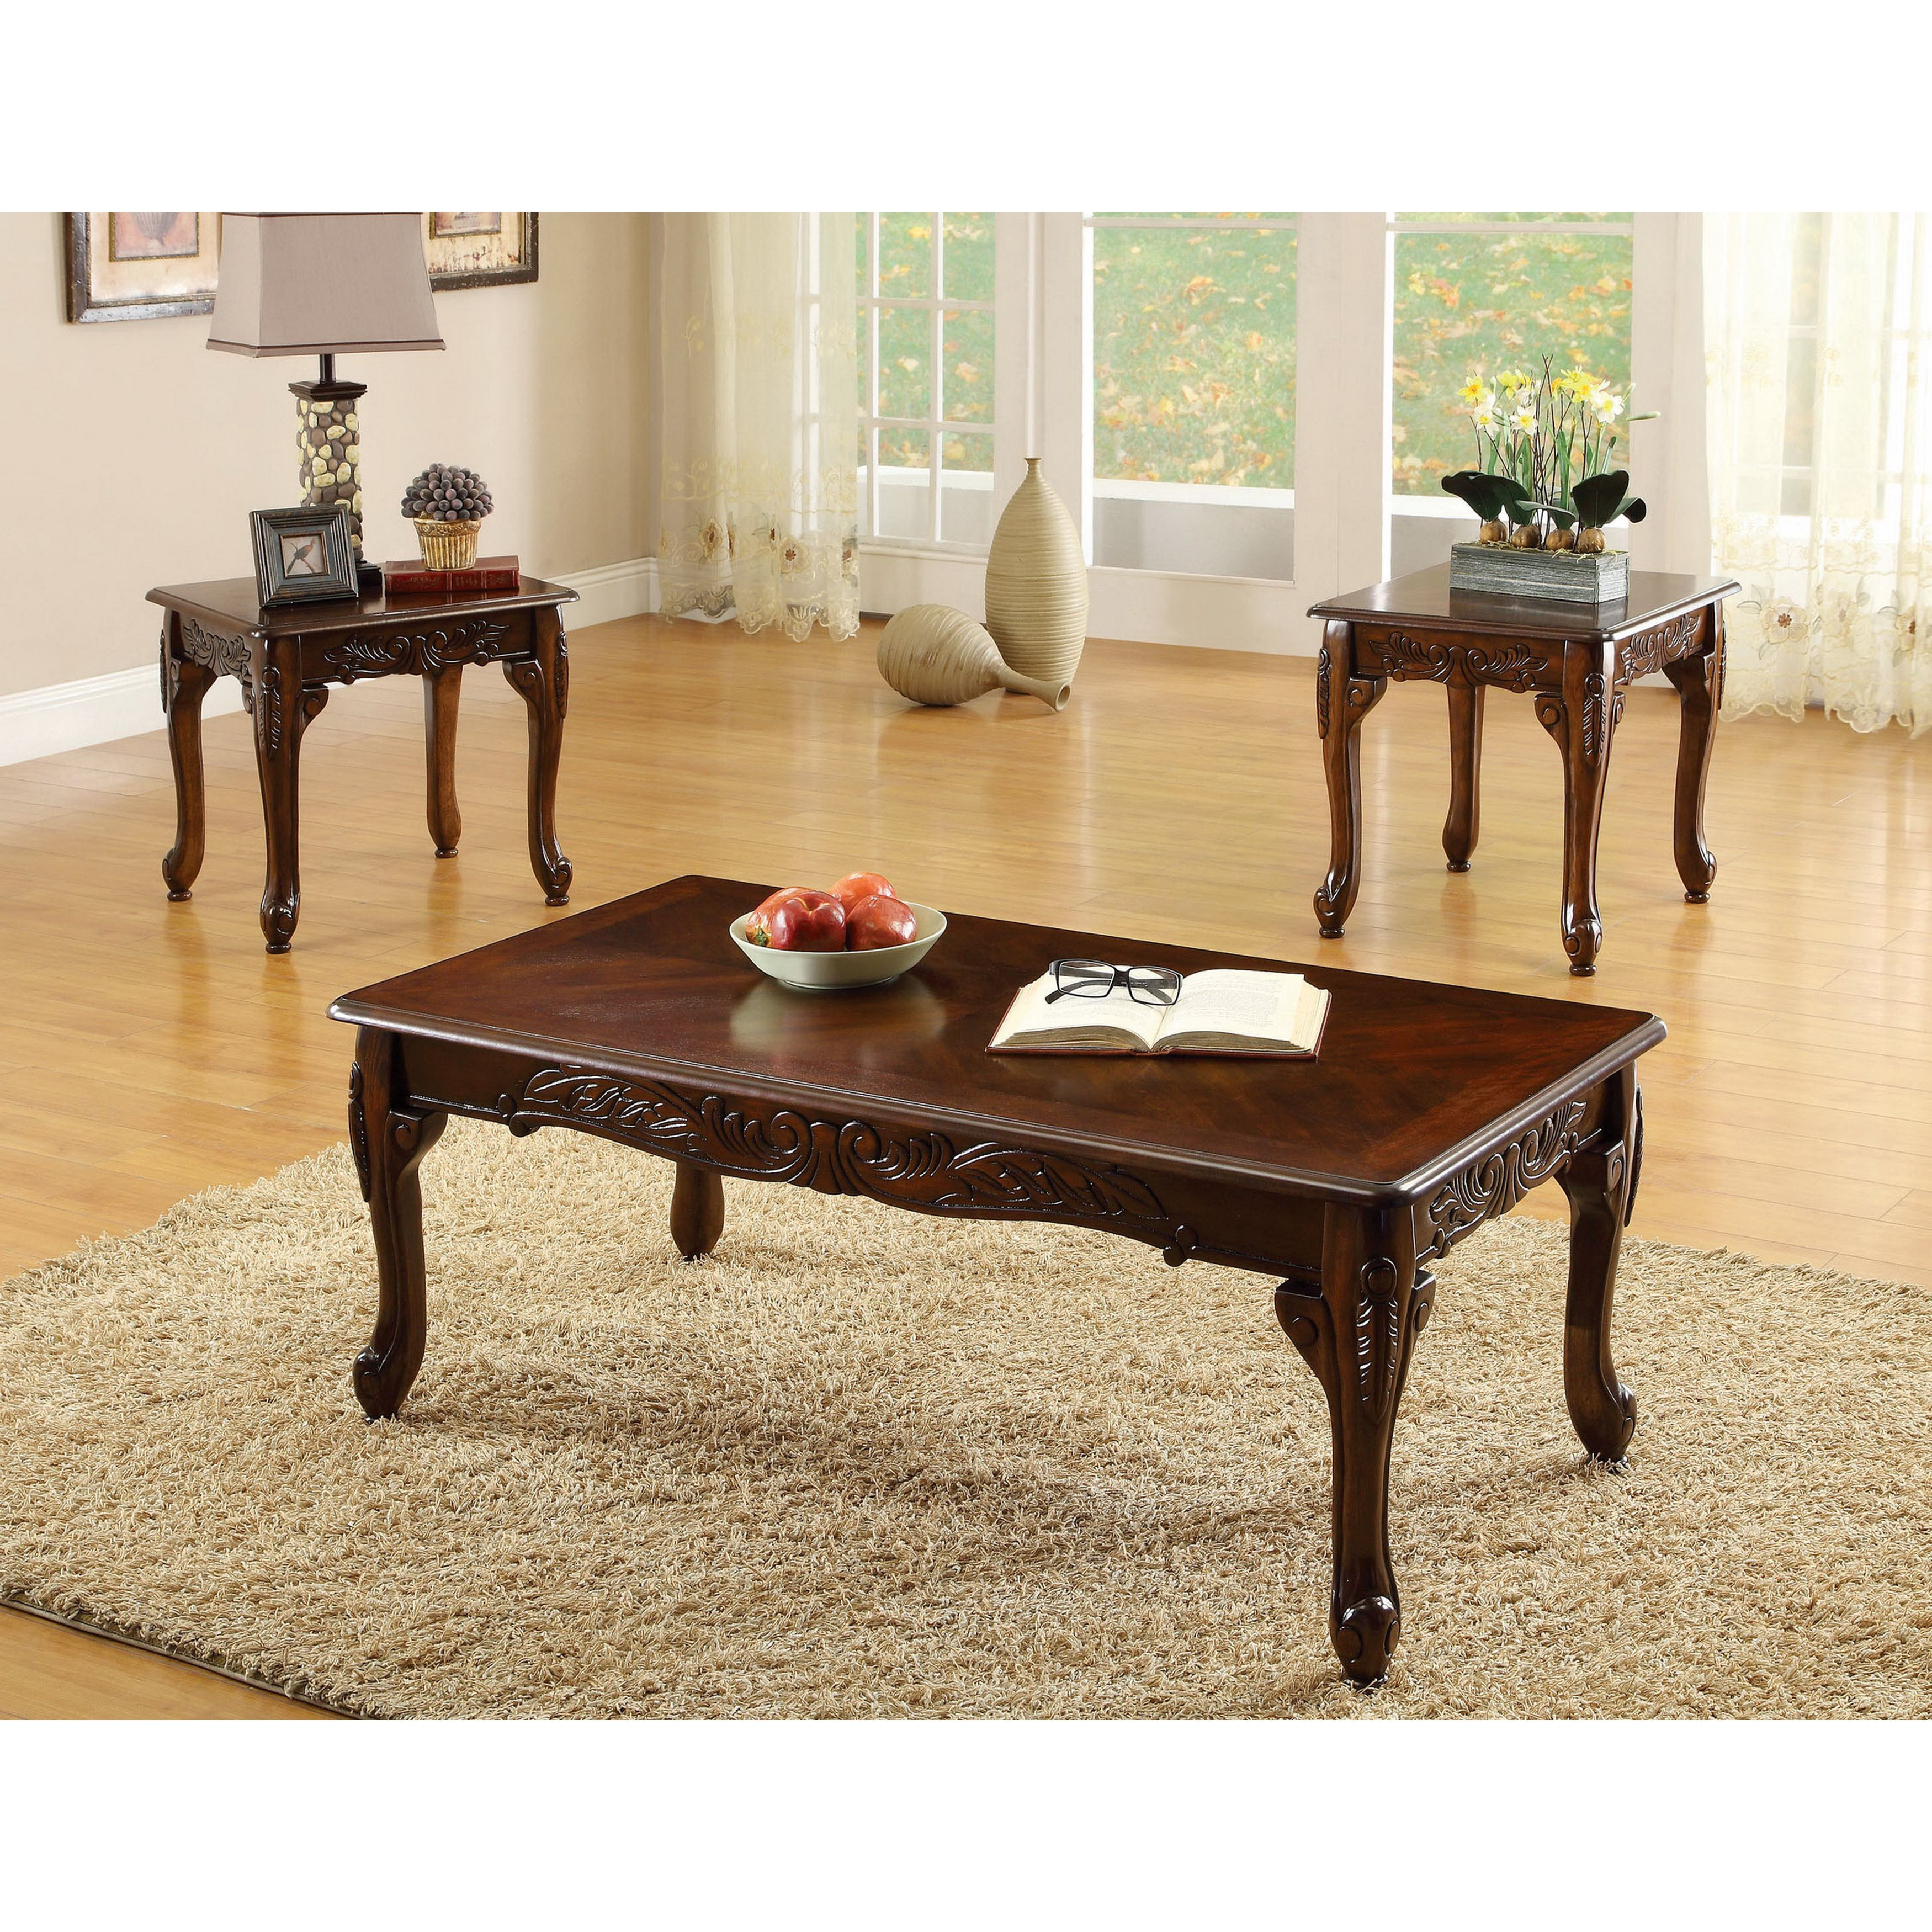 Overstock Com Online Shopping Bedding Furniture Electronics Jewelry Clothing More Living Room Sets Furniture 3 Piece Coffee Table Set Sofa End Tables [ 3500 x 3500 Pixel ]